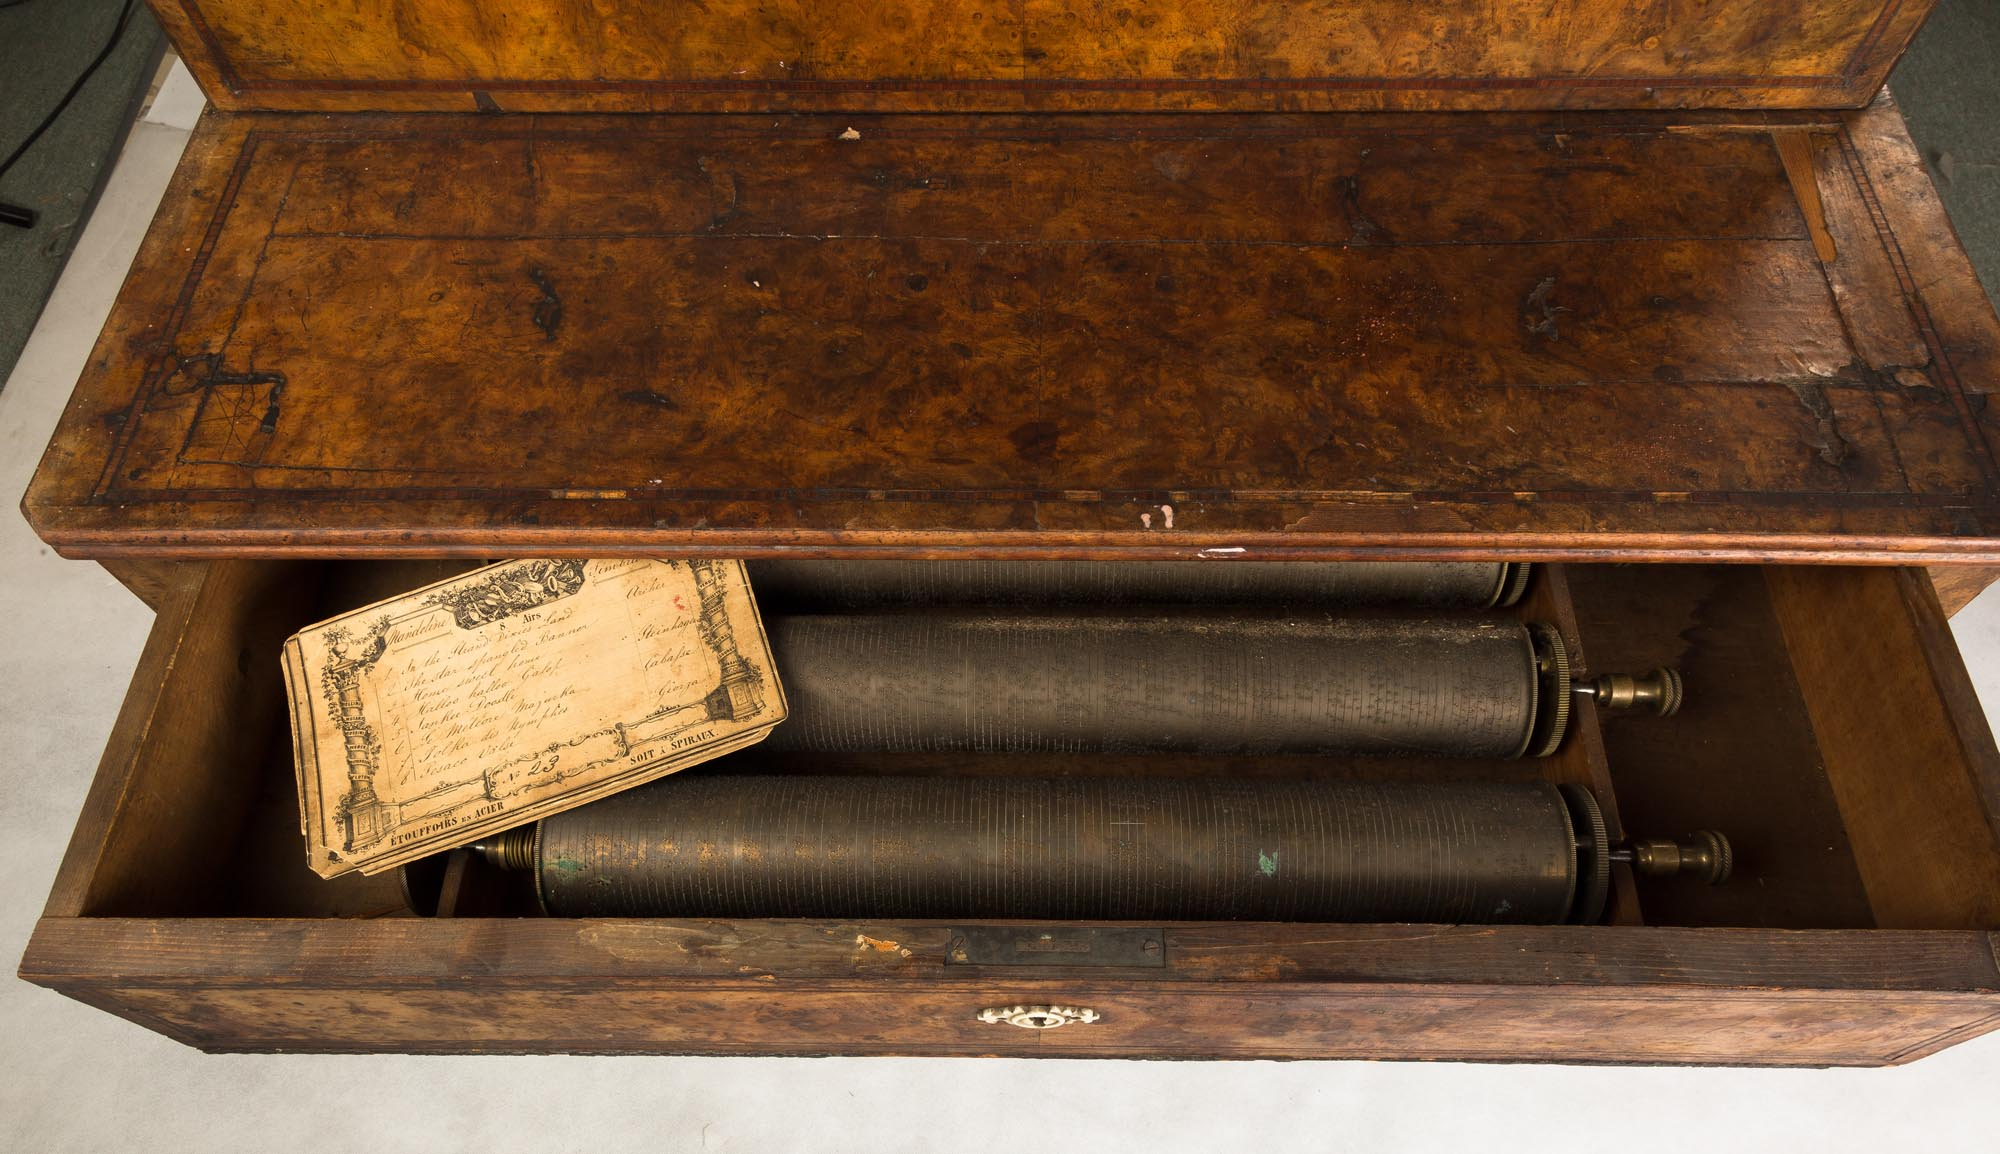 """Lot 214 - French Interchangeable Cylinder Music Box. French, 19th century. (6) 16"""" cylinders. One broken"""